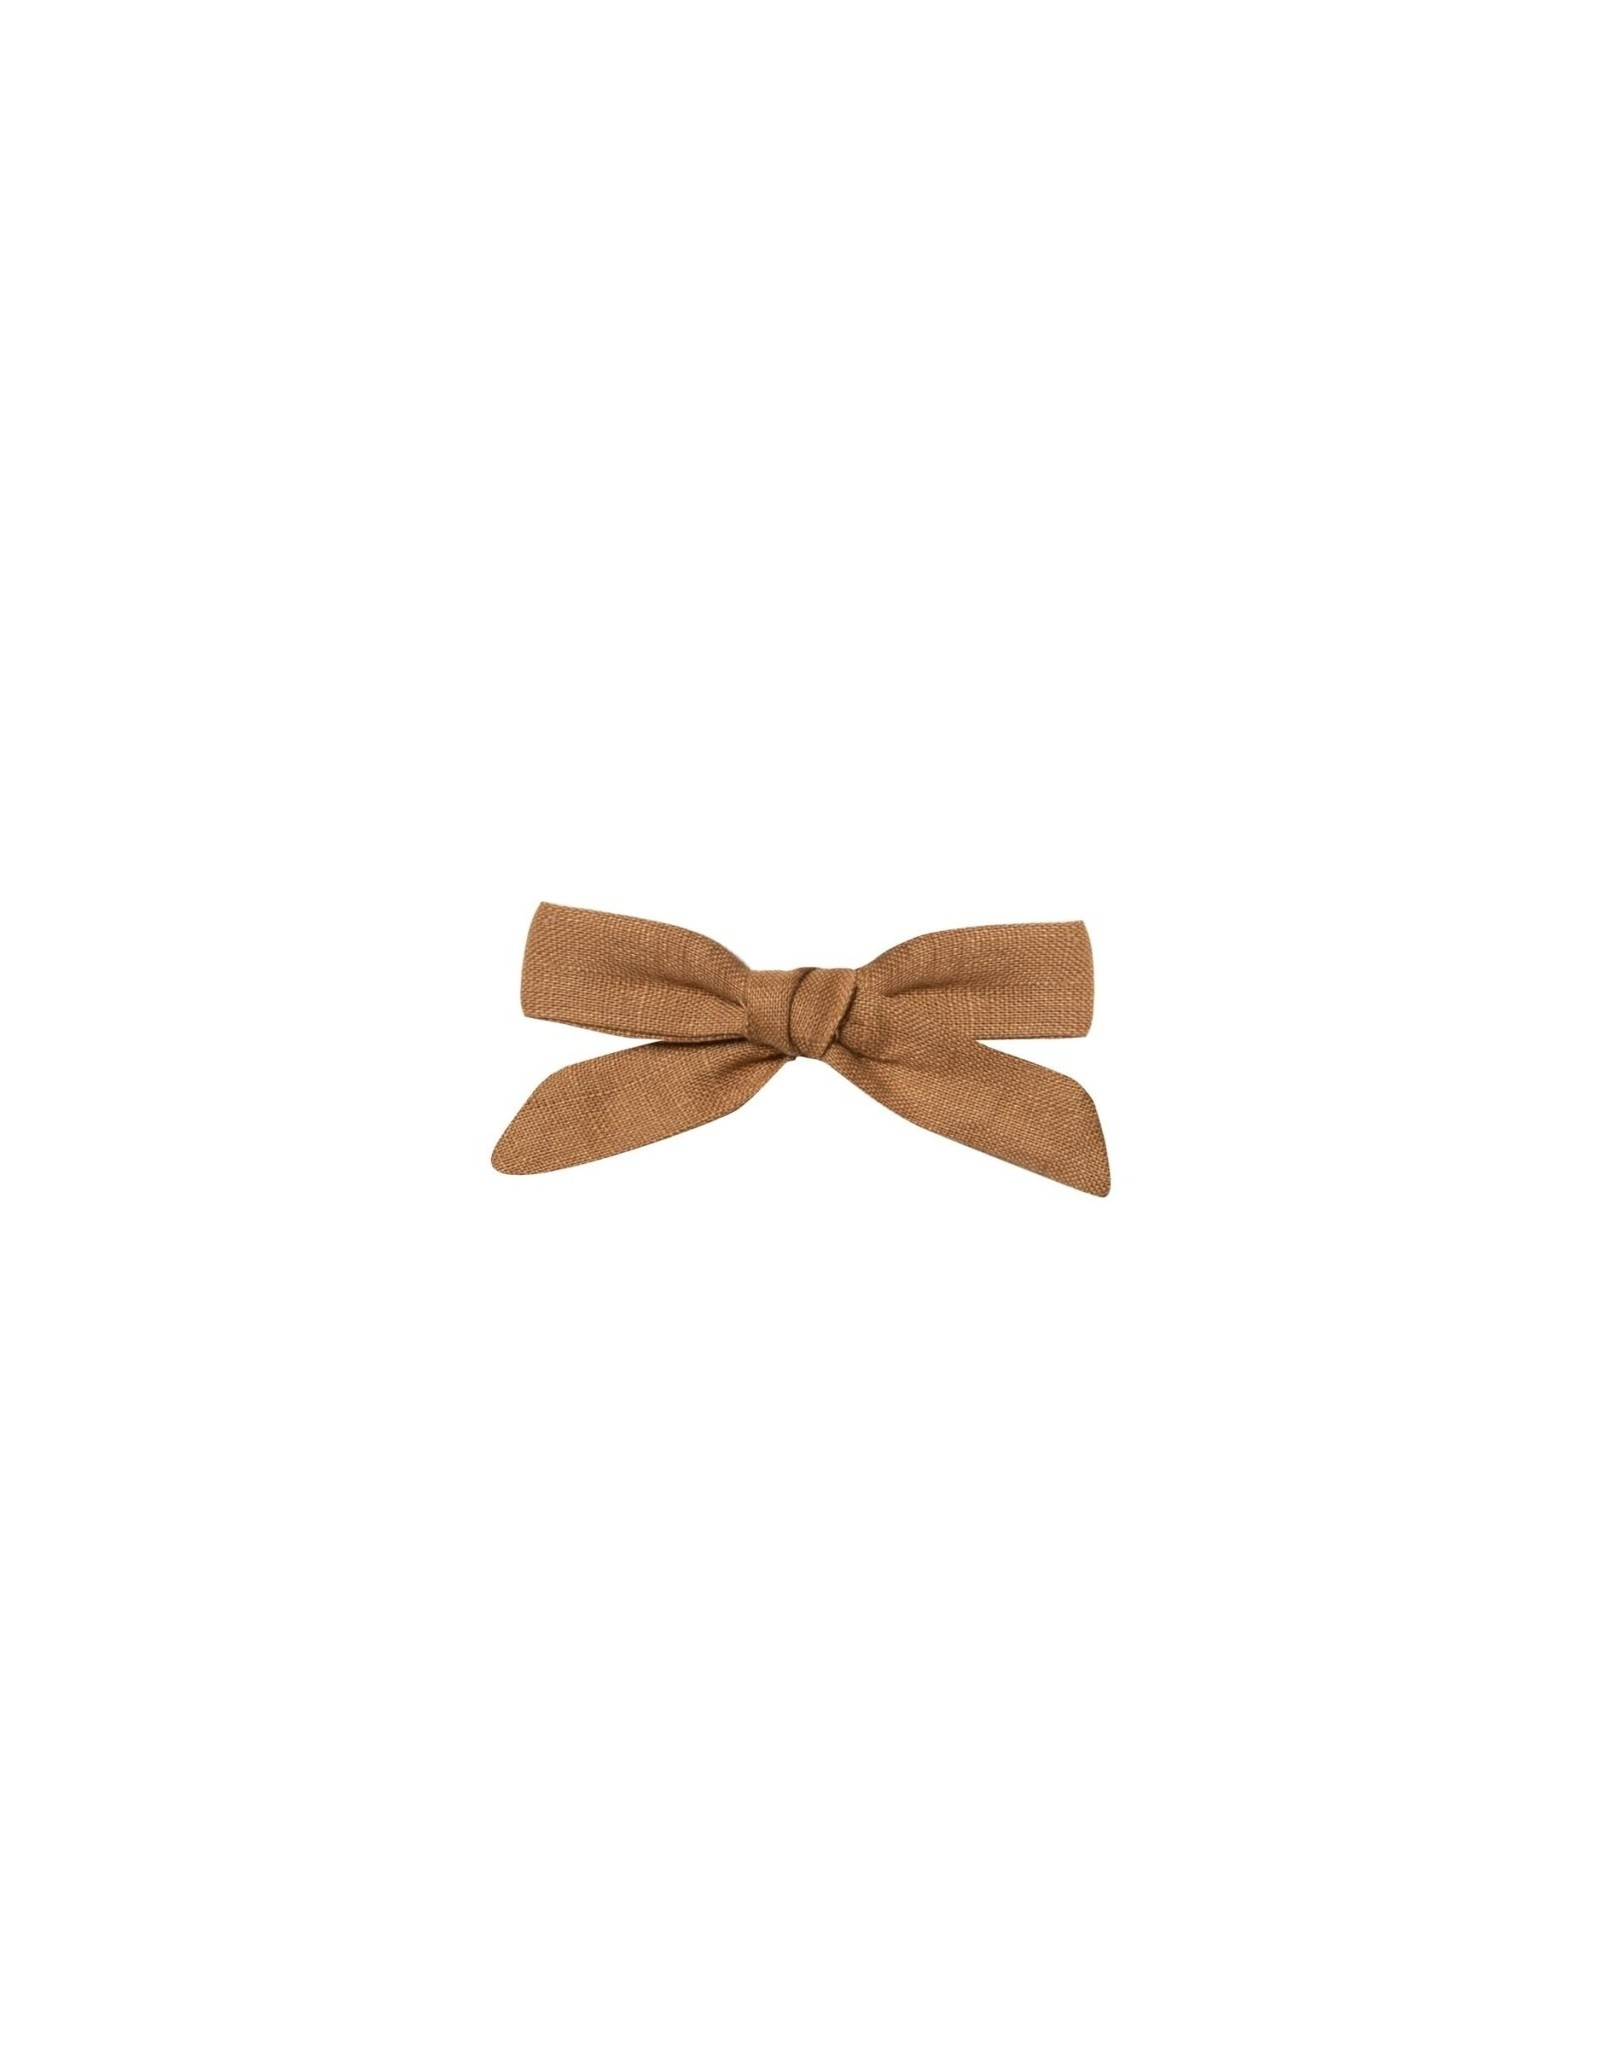 Rylee and Cru bronze bow (clip)